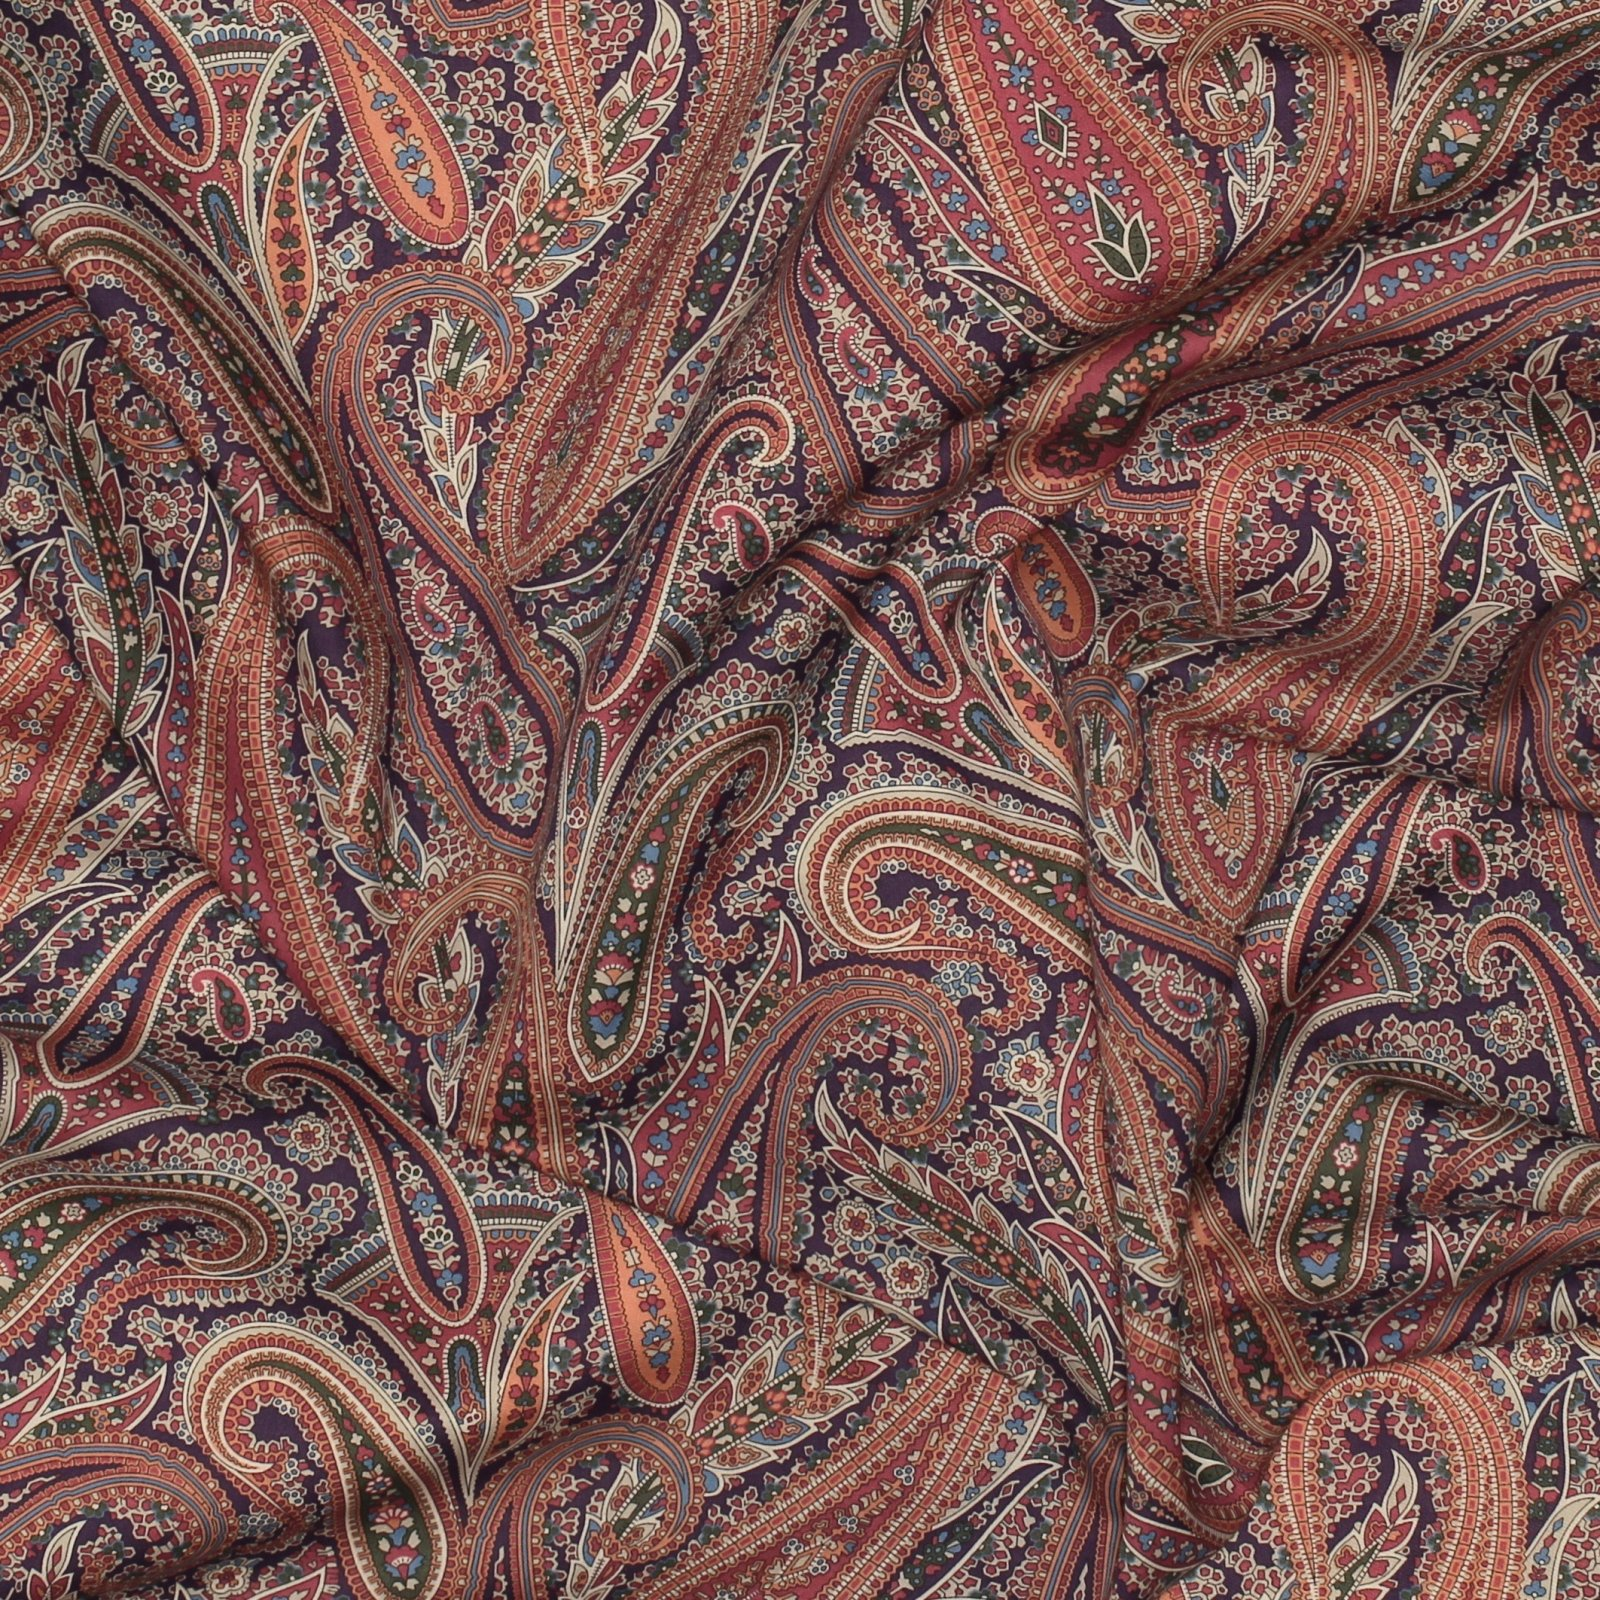 Liberty of London - PAISLEY PARK - B - Tana Lawn